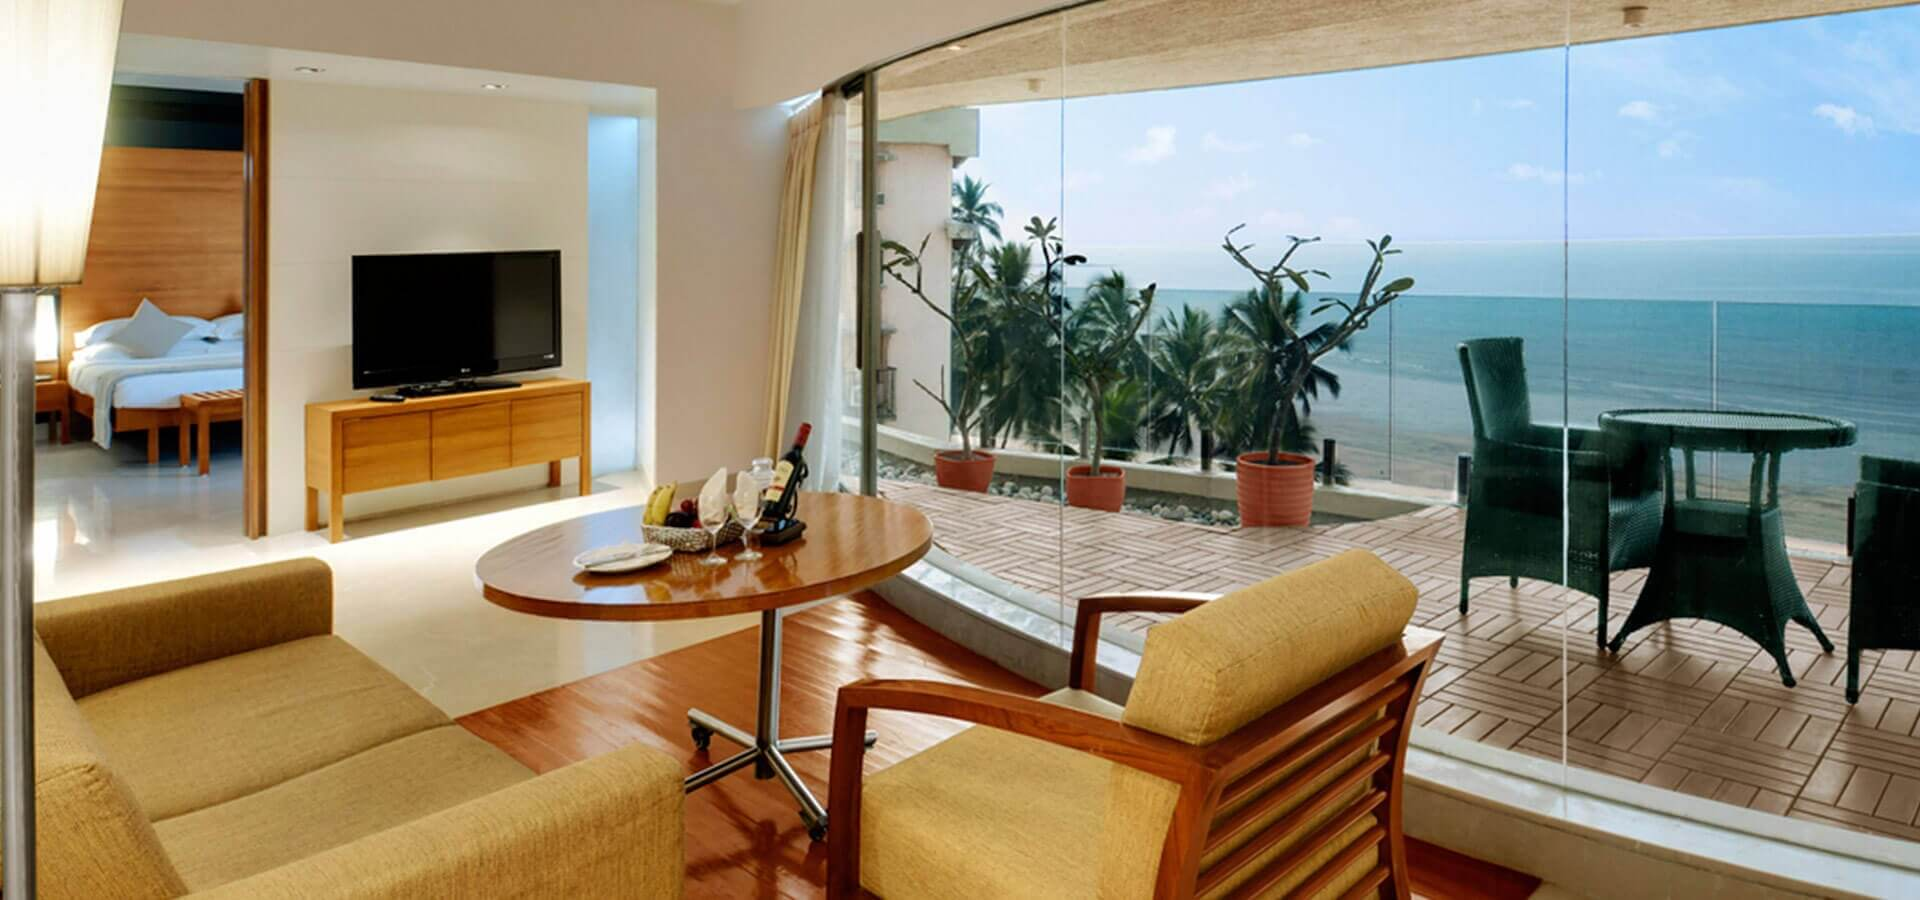 luxury hotels in Juhu, hotels with suite rooms in Juhu